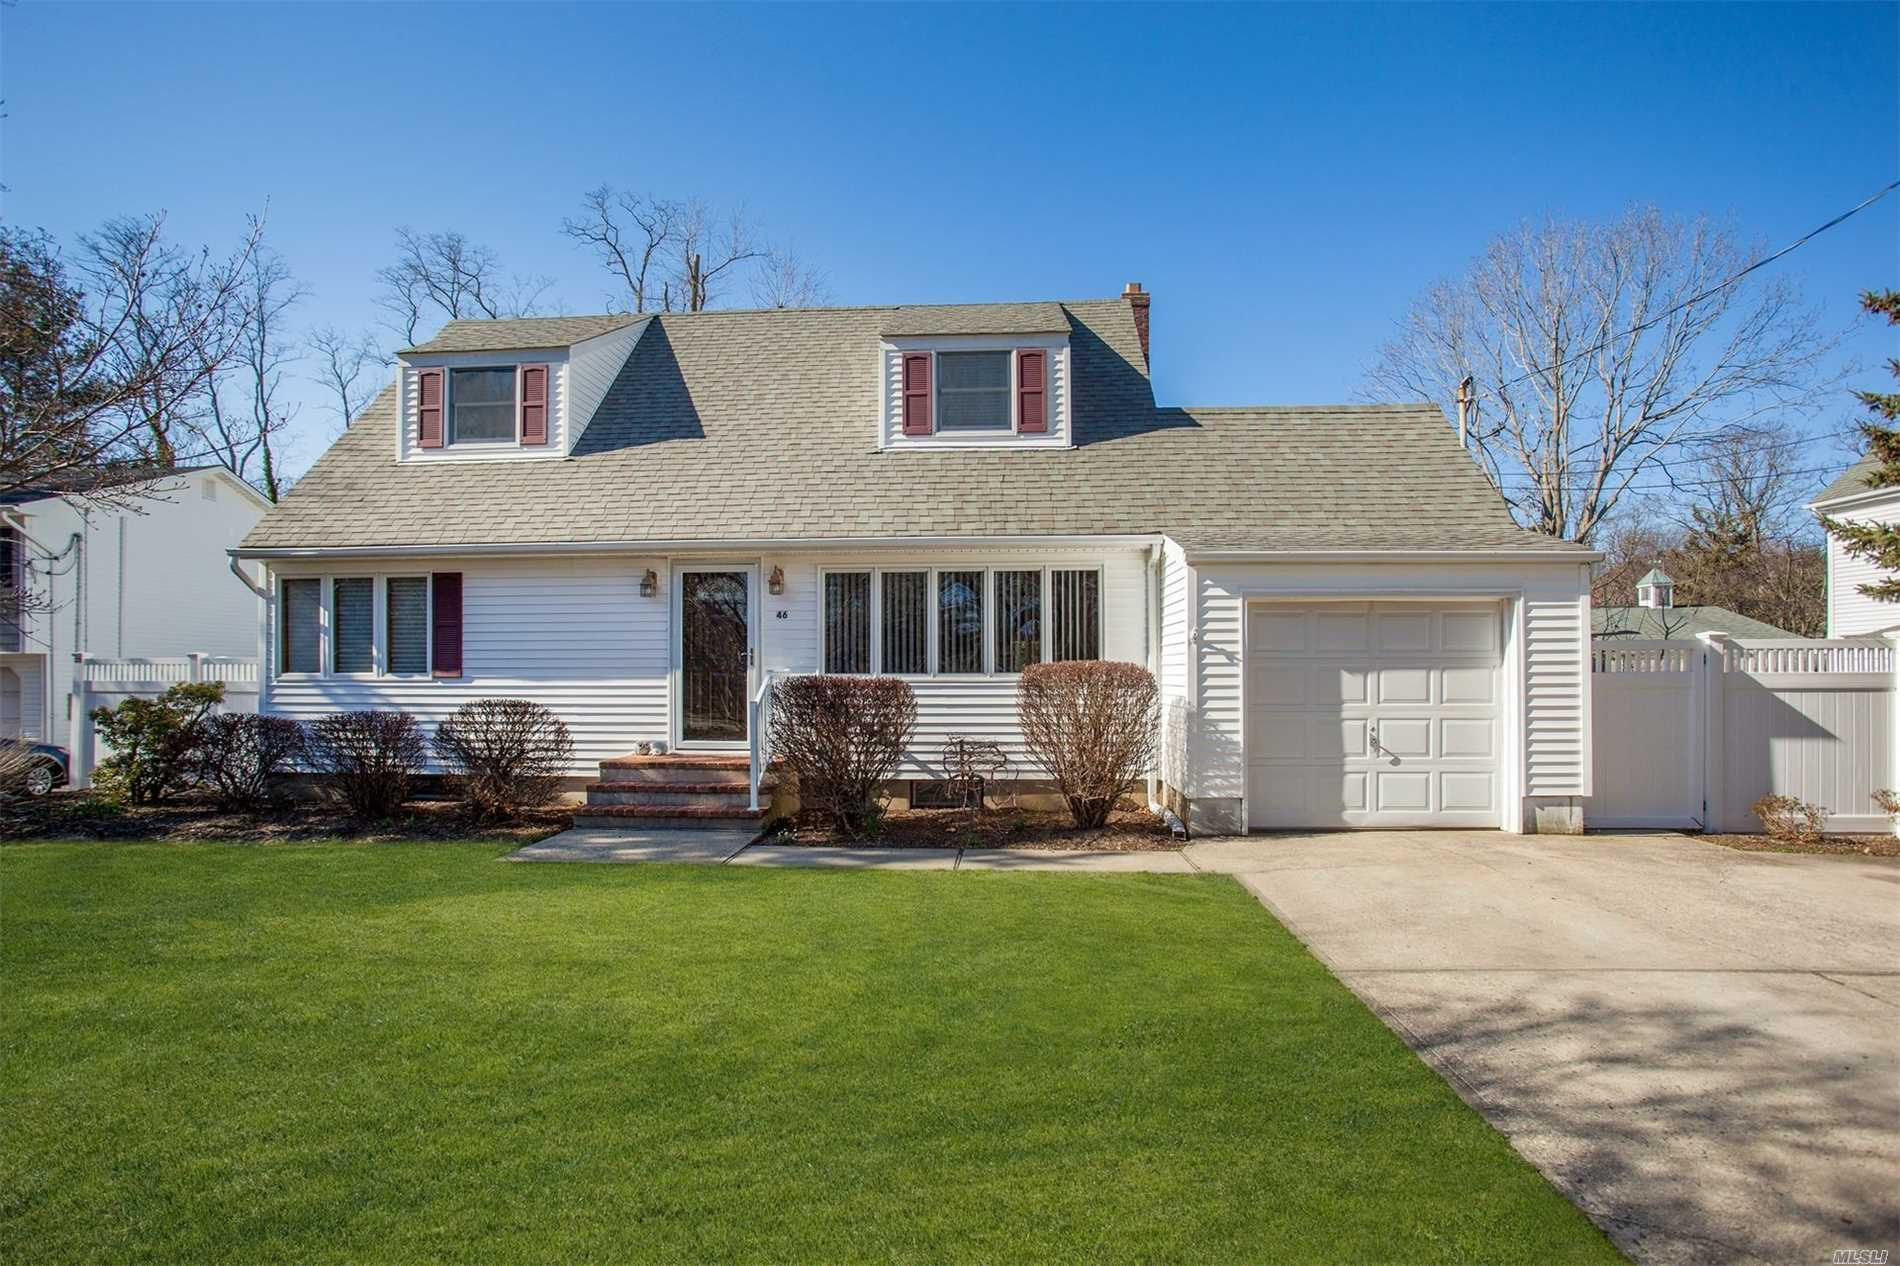 Beautiful Cape off Cul-de-Sac Walk to Beach! Spacious Expanded & Remodeled in 2001 & 2016. Bright Open Floor Plan w/Chef's Kitchen, SS Appliances, Wolf Pro 6-Burner Gas Range, Quartz Counter, New Sub-Floor, Stunning Plank Flooring. Entertaining Finished Basement w/Built-in Bar & Bathrm, Huge Mster bdrm Suite w/Dressing Alcove+ Full Bath, Jetted Tub.Stone Patio w/Hot Tub, Storage Shed; Two Driveways, PARK & ENTER HOME FROM SUNSET LANE (Cul-de-sac) #46 Mailbox. PLUS 13 mo Home Warranty!